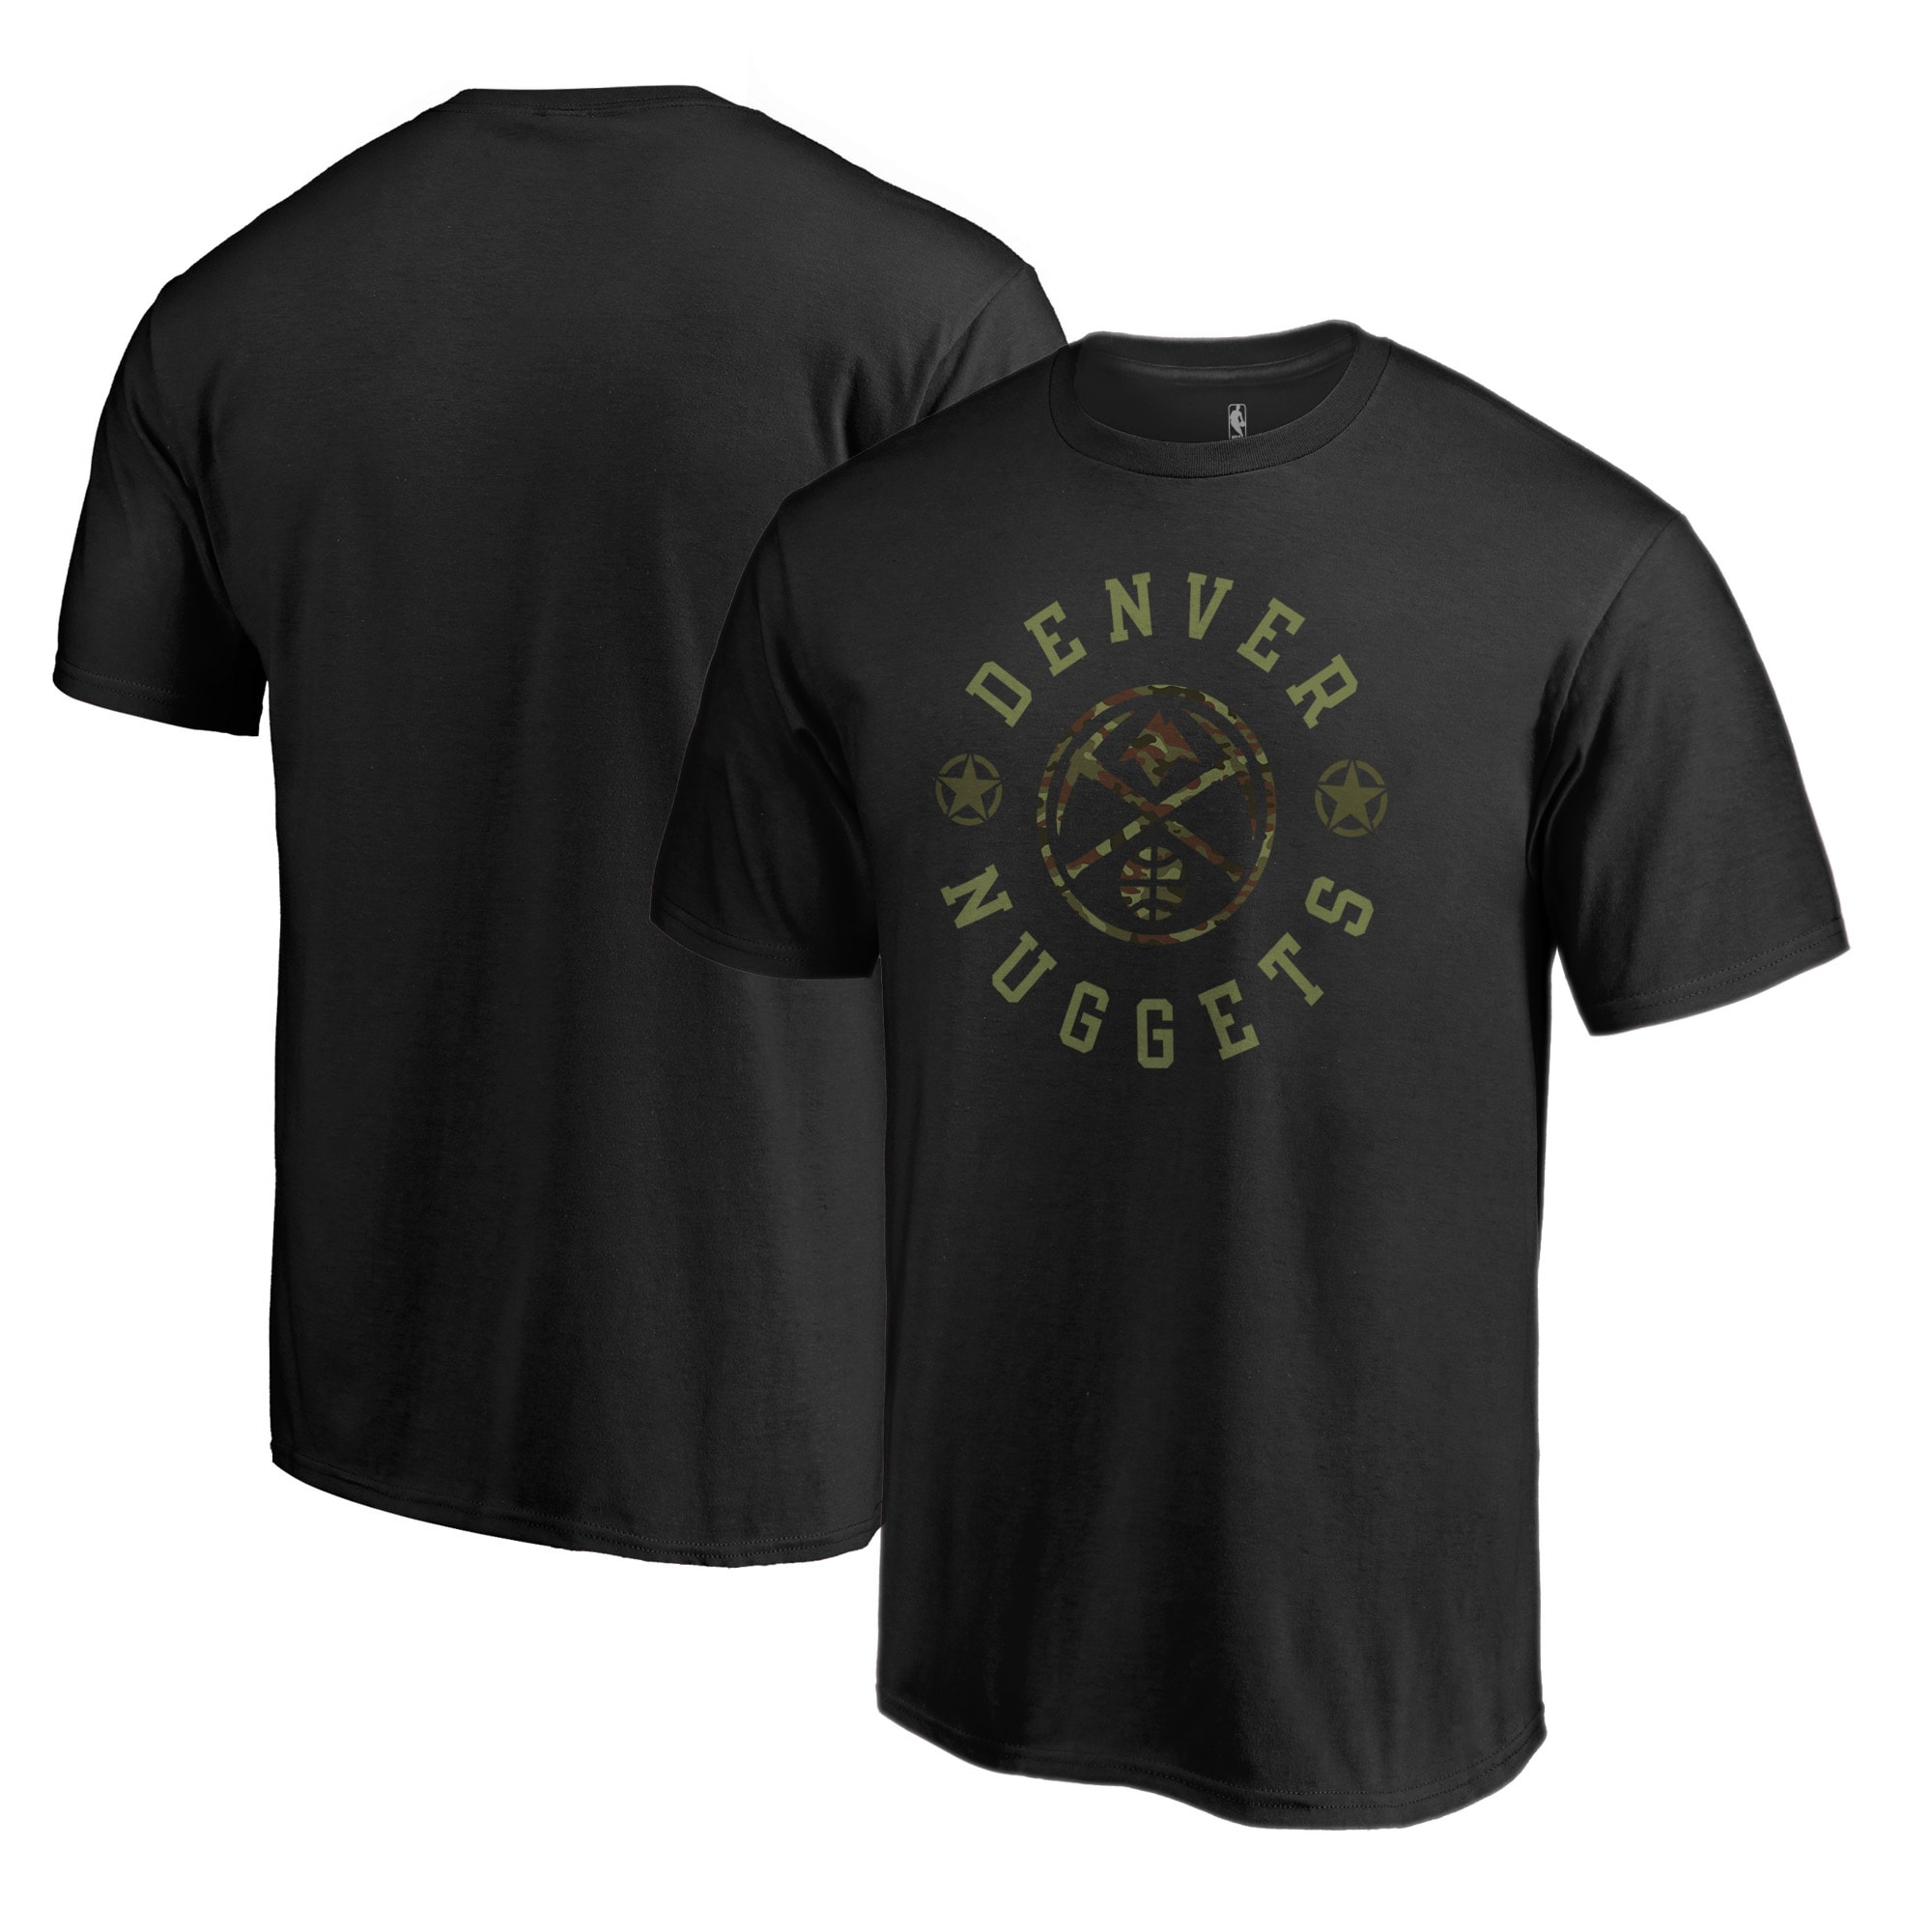 Denver Nuggets Fanatics Branded Liberty Camo Big & Tall T-Shirt - Black